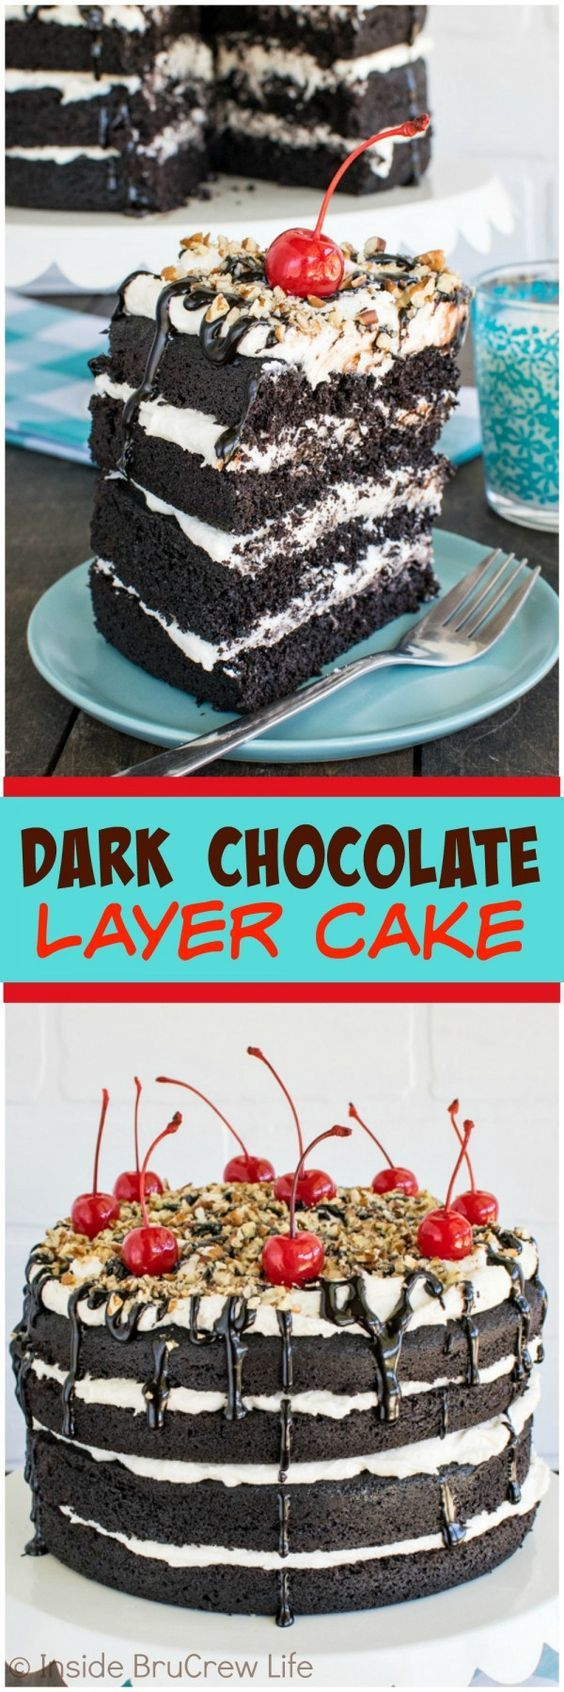 Dark Chocolate Layer Cake - 4 layers of cake and frosting topped with ...